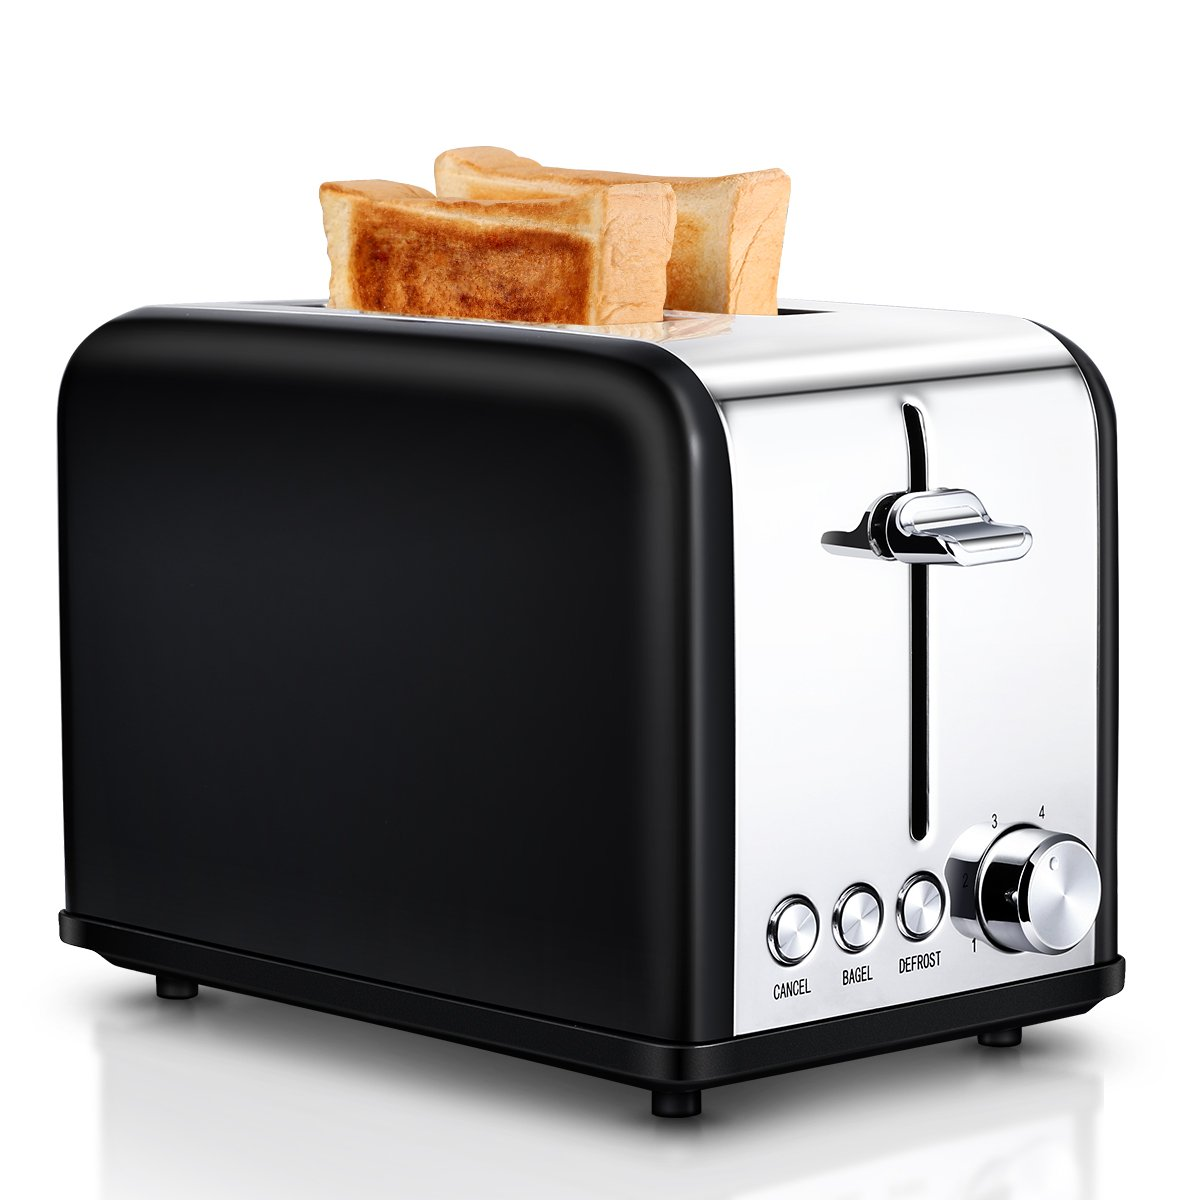 Small Wide Slot Black Toasters Two Slice, Stainless Steel Kitchen Toaster for Bagels Bread